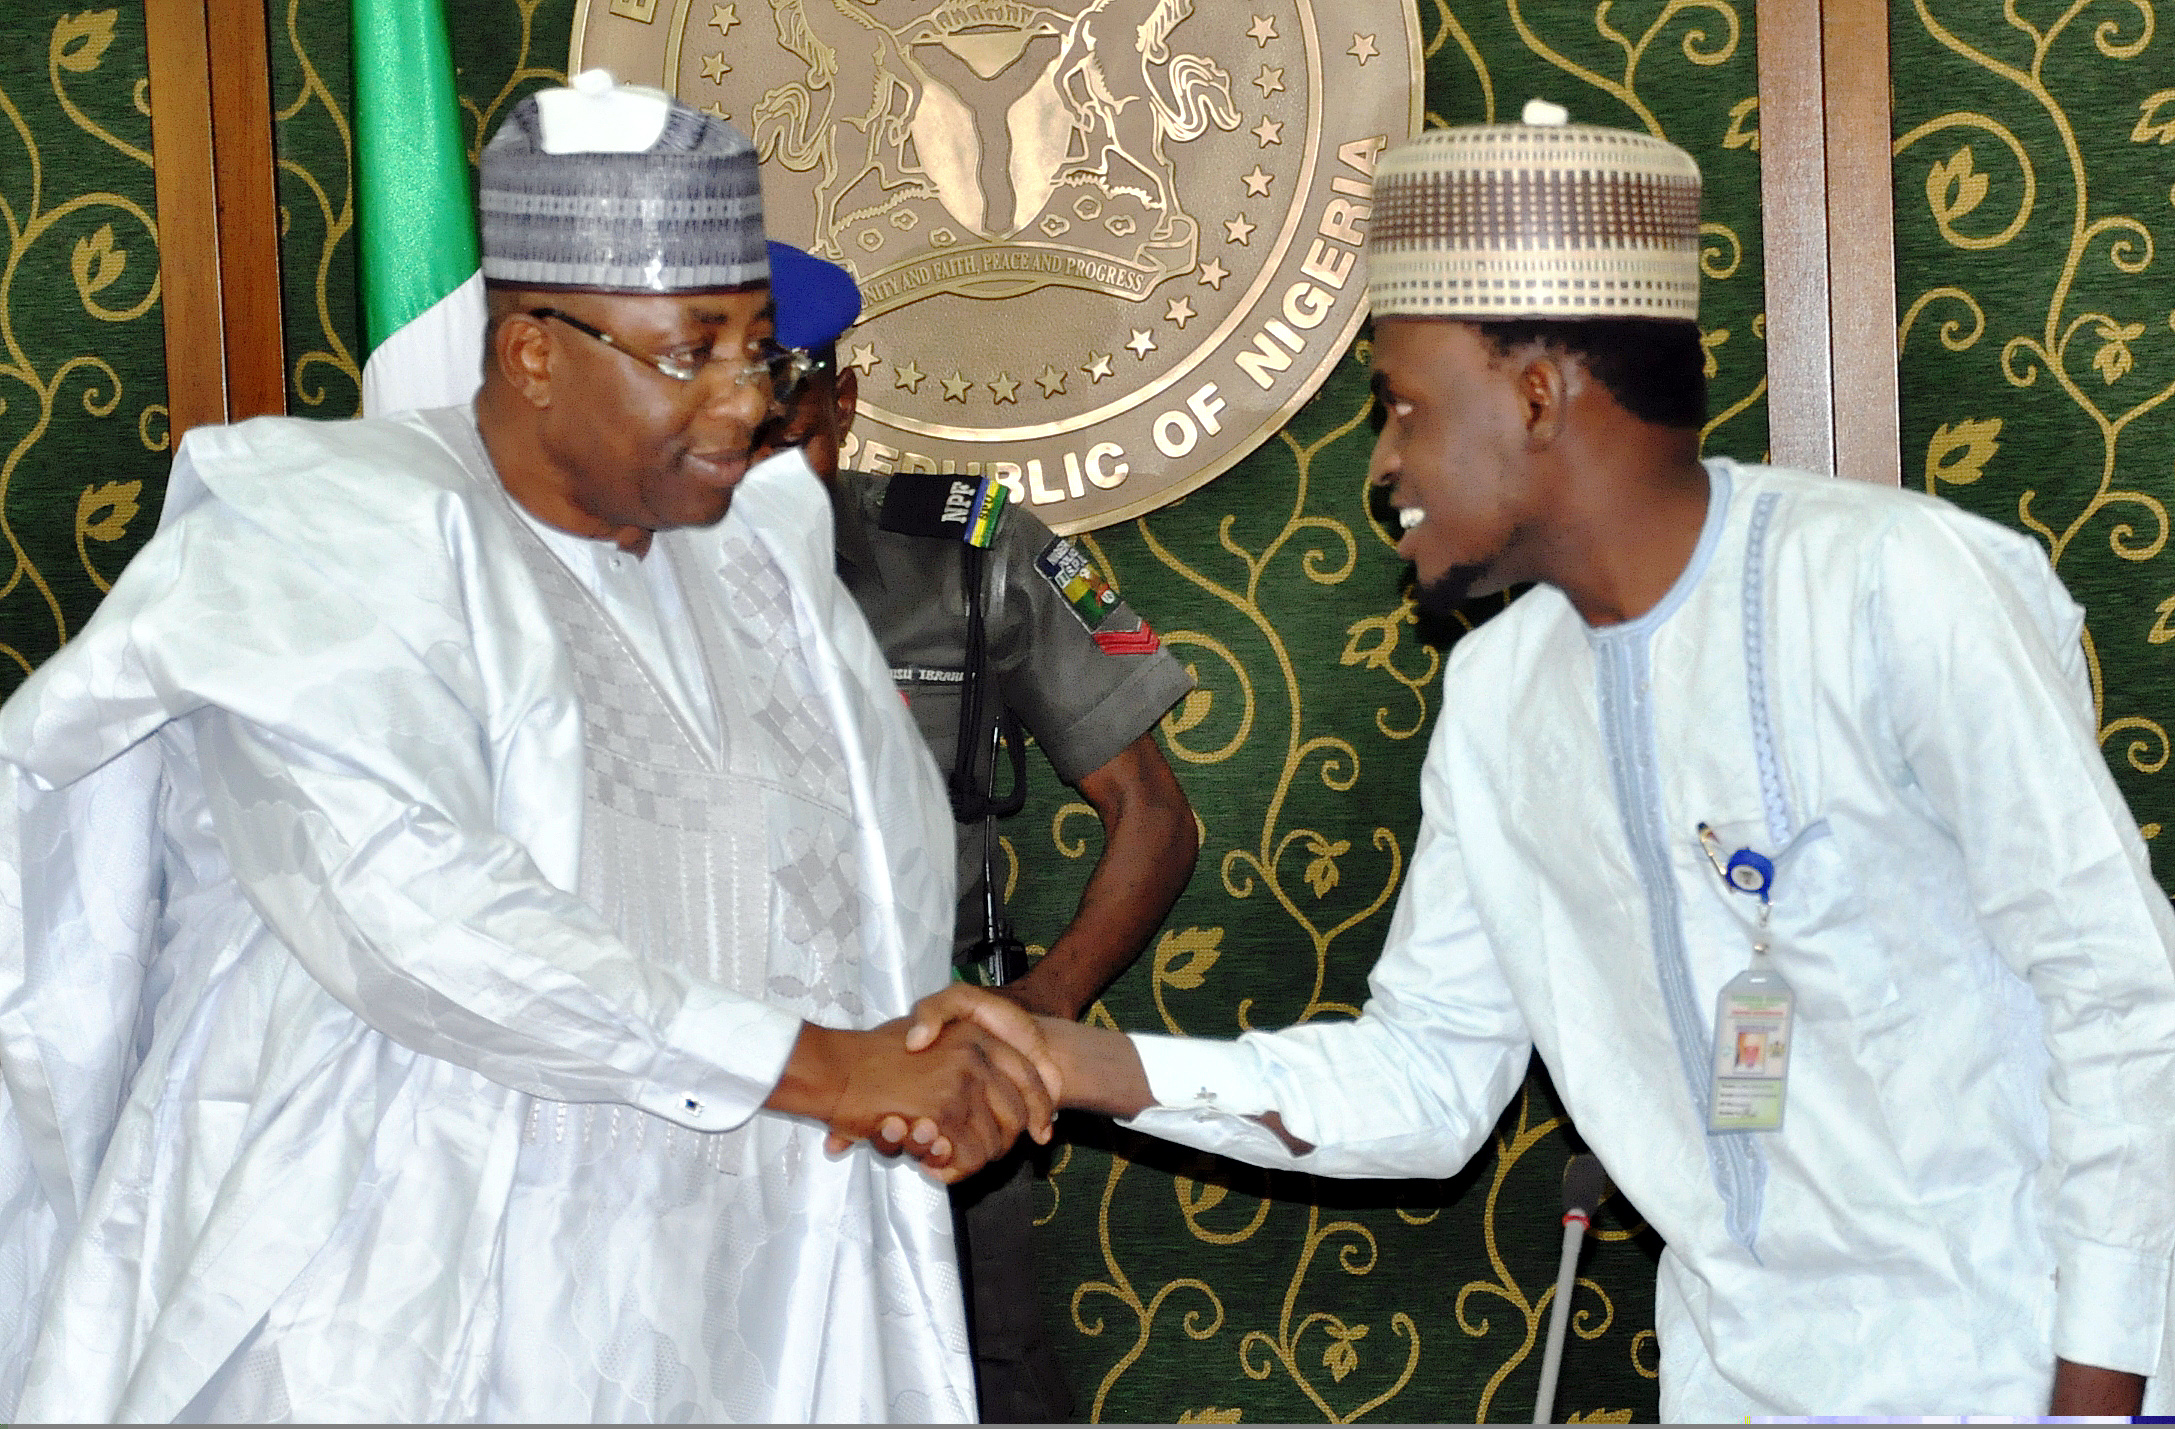 GOV. MUHAMMED ABUBAKAR RECEIVES EXECUTIVE MEMBERS OF BAUCHI STUDENTS PIC 11. GOV. MUHAMMED ABUBAKAR OF BAUCHI STATE (L) WELCOMING THE STATE CHAIRMAN, NATIONAL UNION OF BAUCHI STATE STUDENTS (NUBASS), COMRADE MOHAMMED GOTEL WHO LED NUBASS EXECUTIVES TO THE GOVERNMENT HOUSE IN BAUCHI ON THURSDAY (3/12/15). 7439/3/12/2015/DJ/ICE/NAN